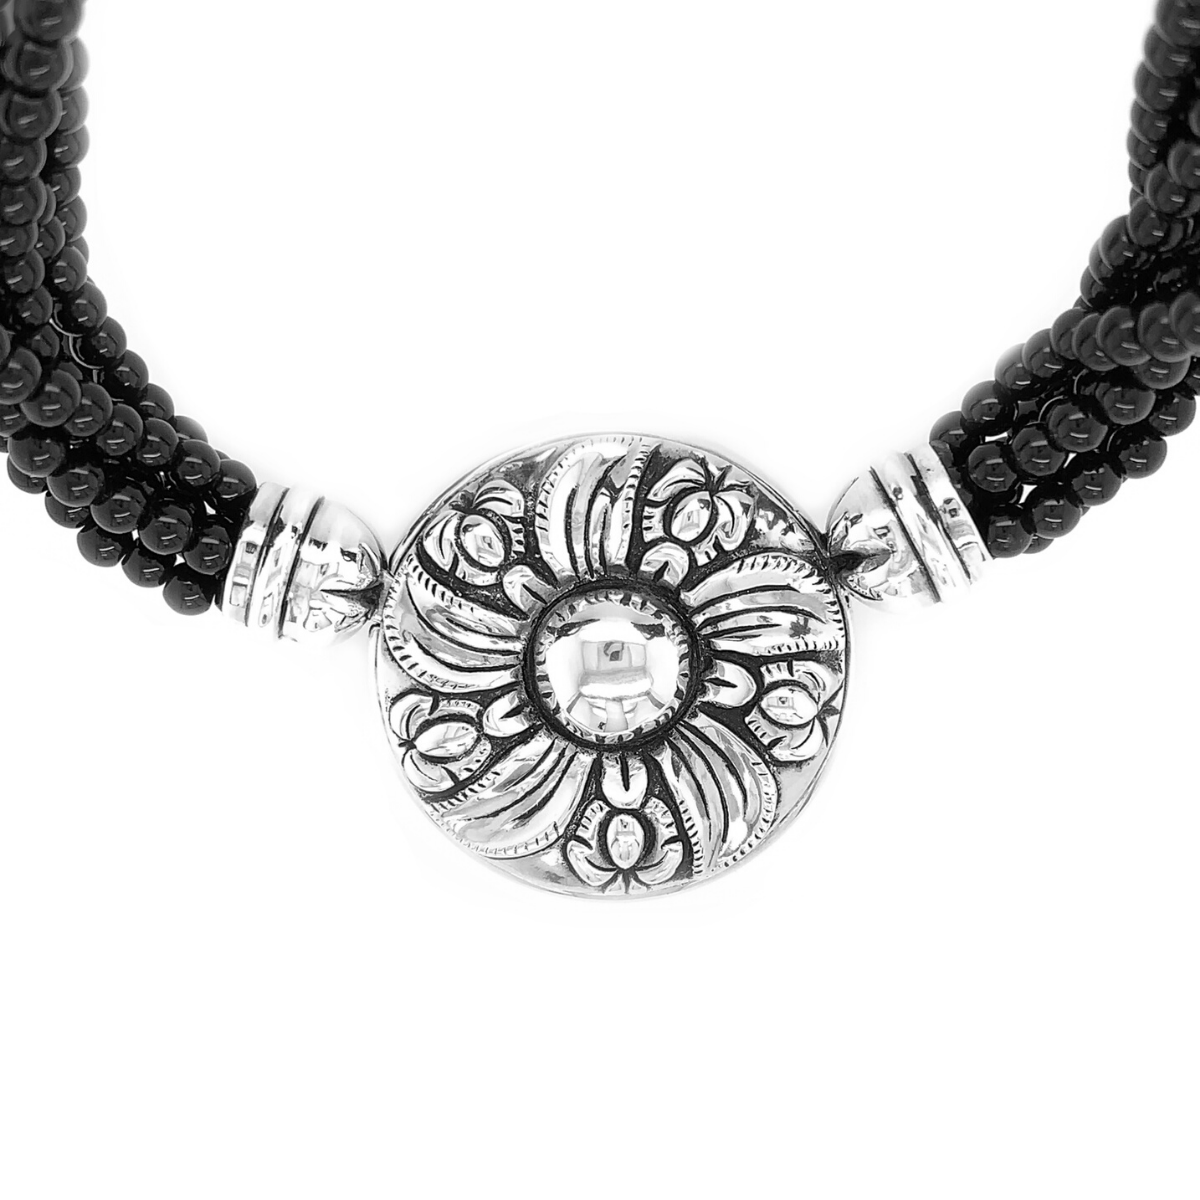 Black Onyx Strands & Sterling Silver Colonial Flower Necklace - Qinti - The Peruvian Shop